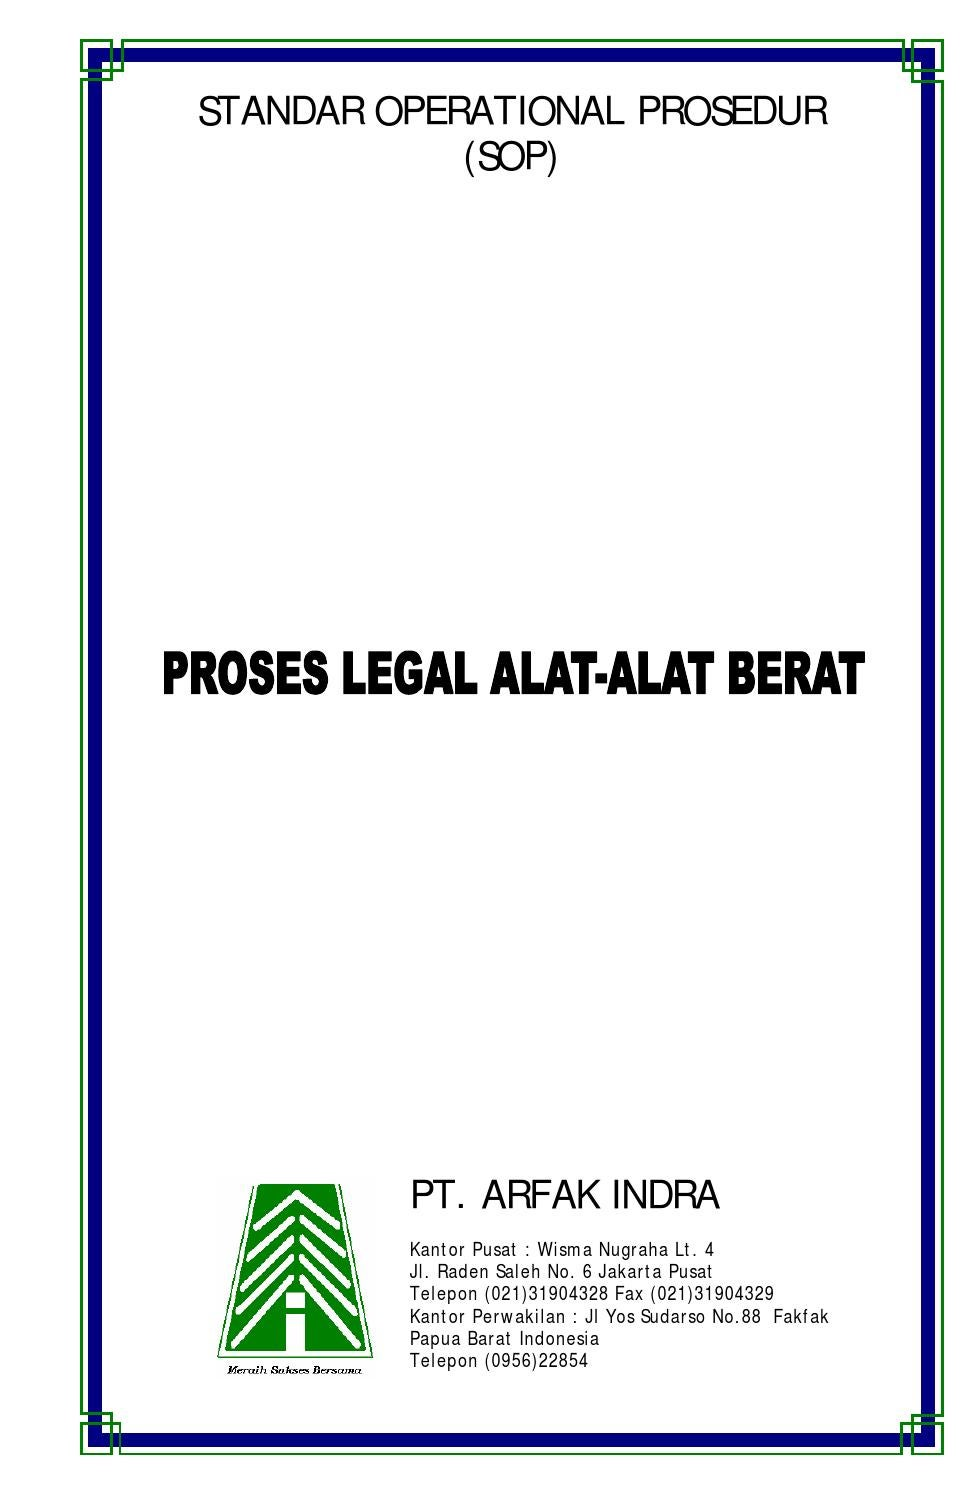 Sop Proses Legal Alat Alat Berat By Arfak Indra Issuu